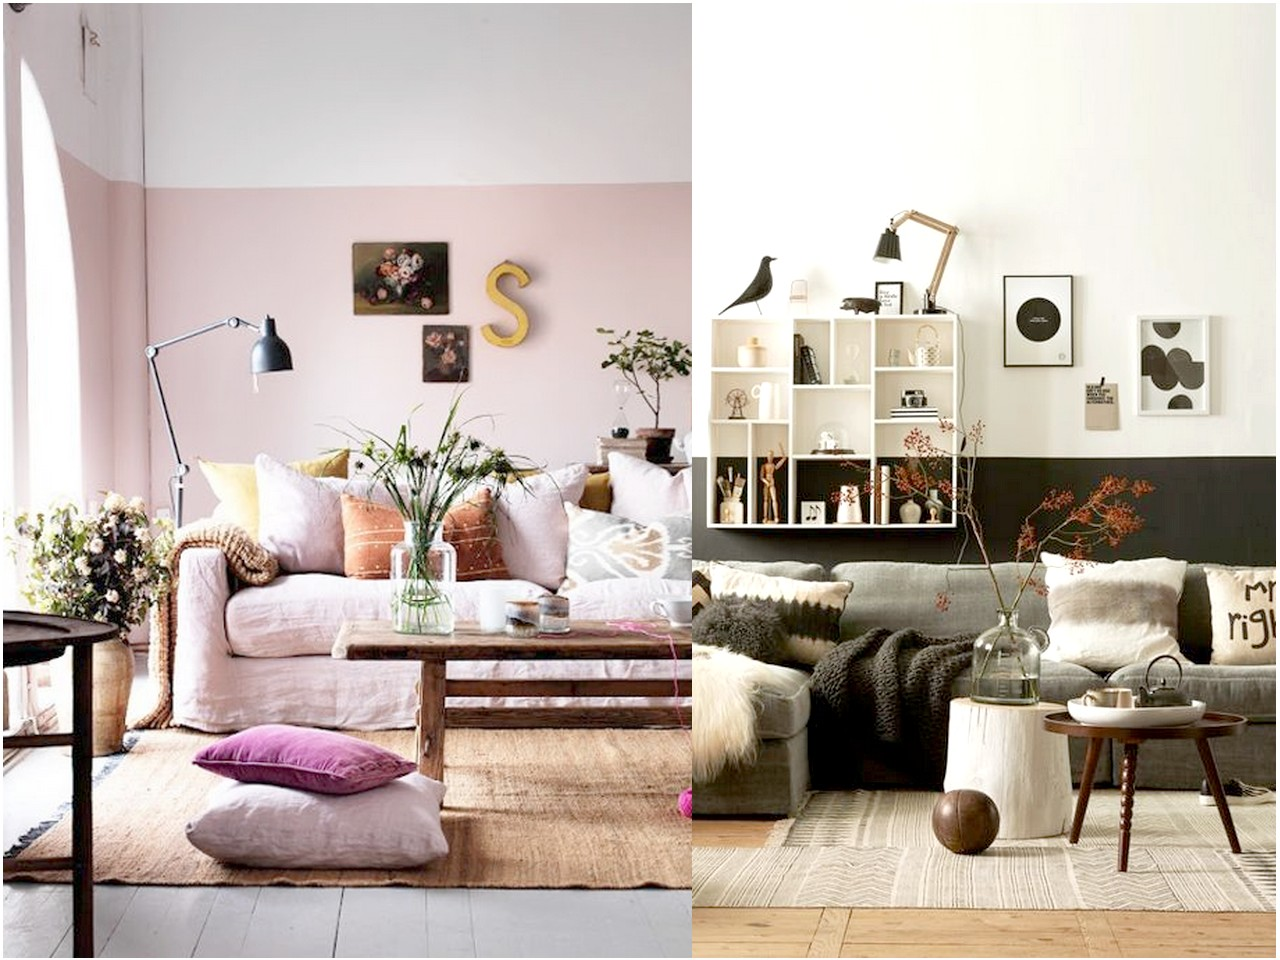 7 ideas para decorar con poco dinero el sal n de tu casa for Cuadros para decorar salon